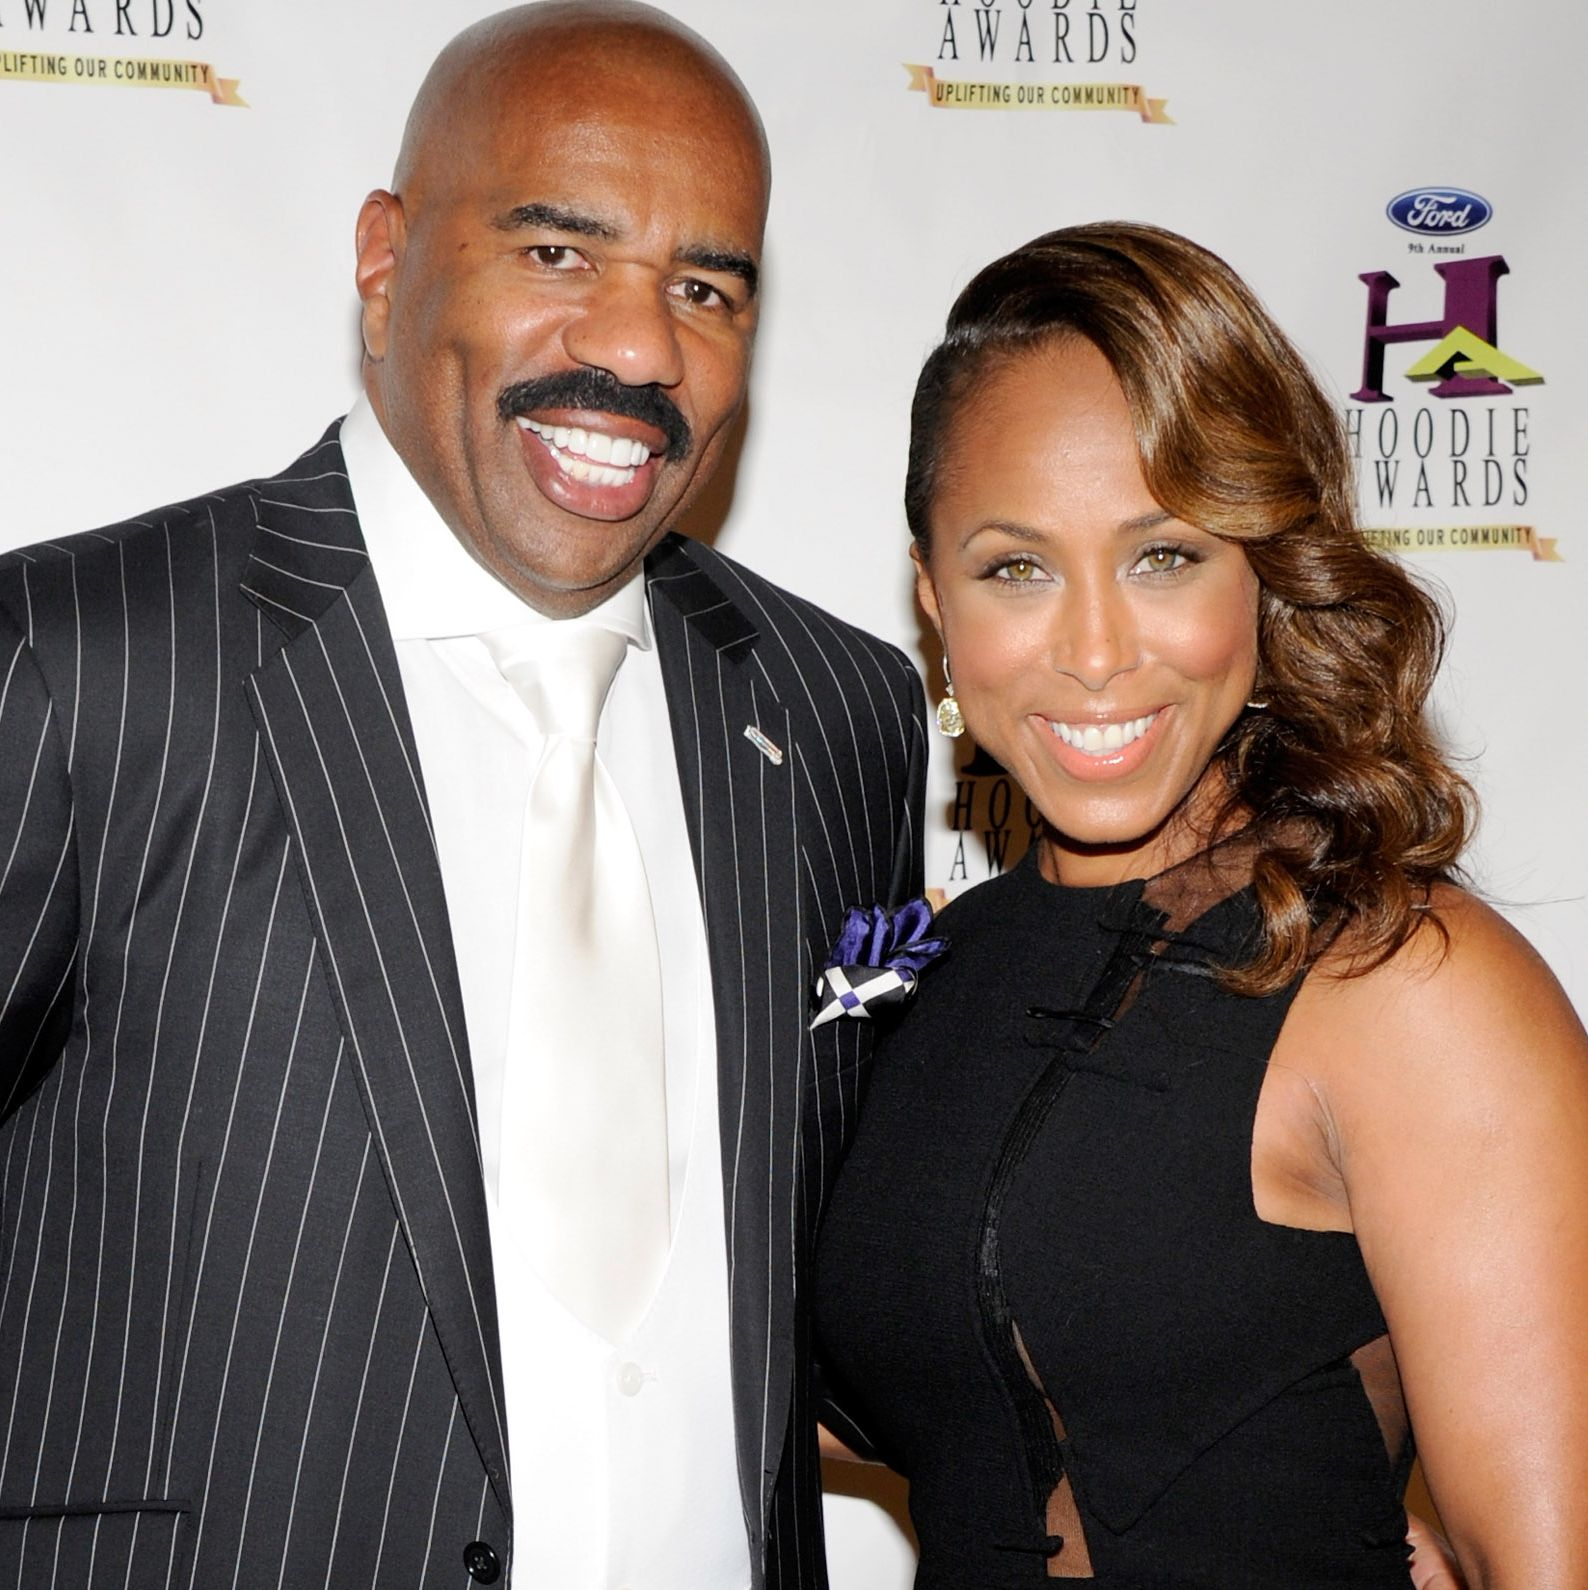 Steve Harvey Might Be Getting a New Show and It Sounds Like It Will Be Amazing